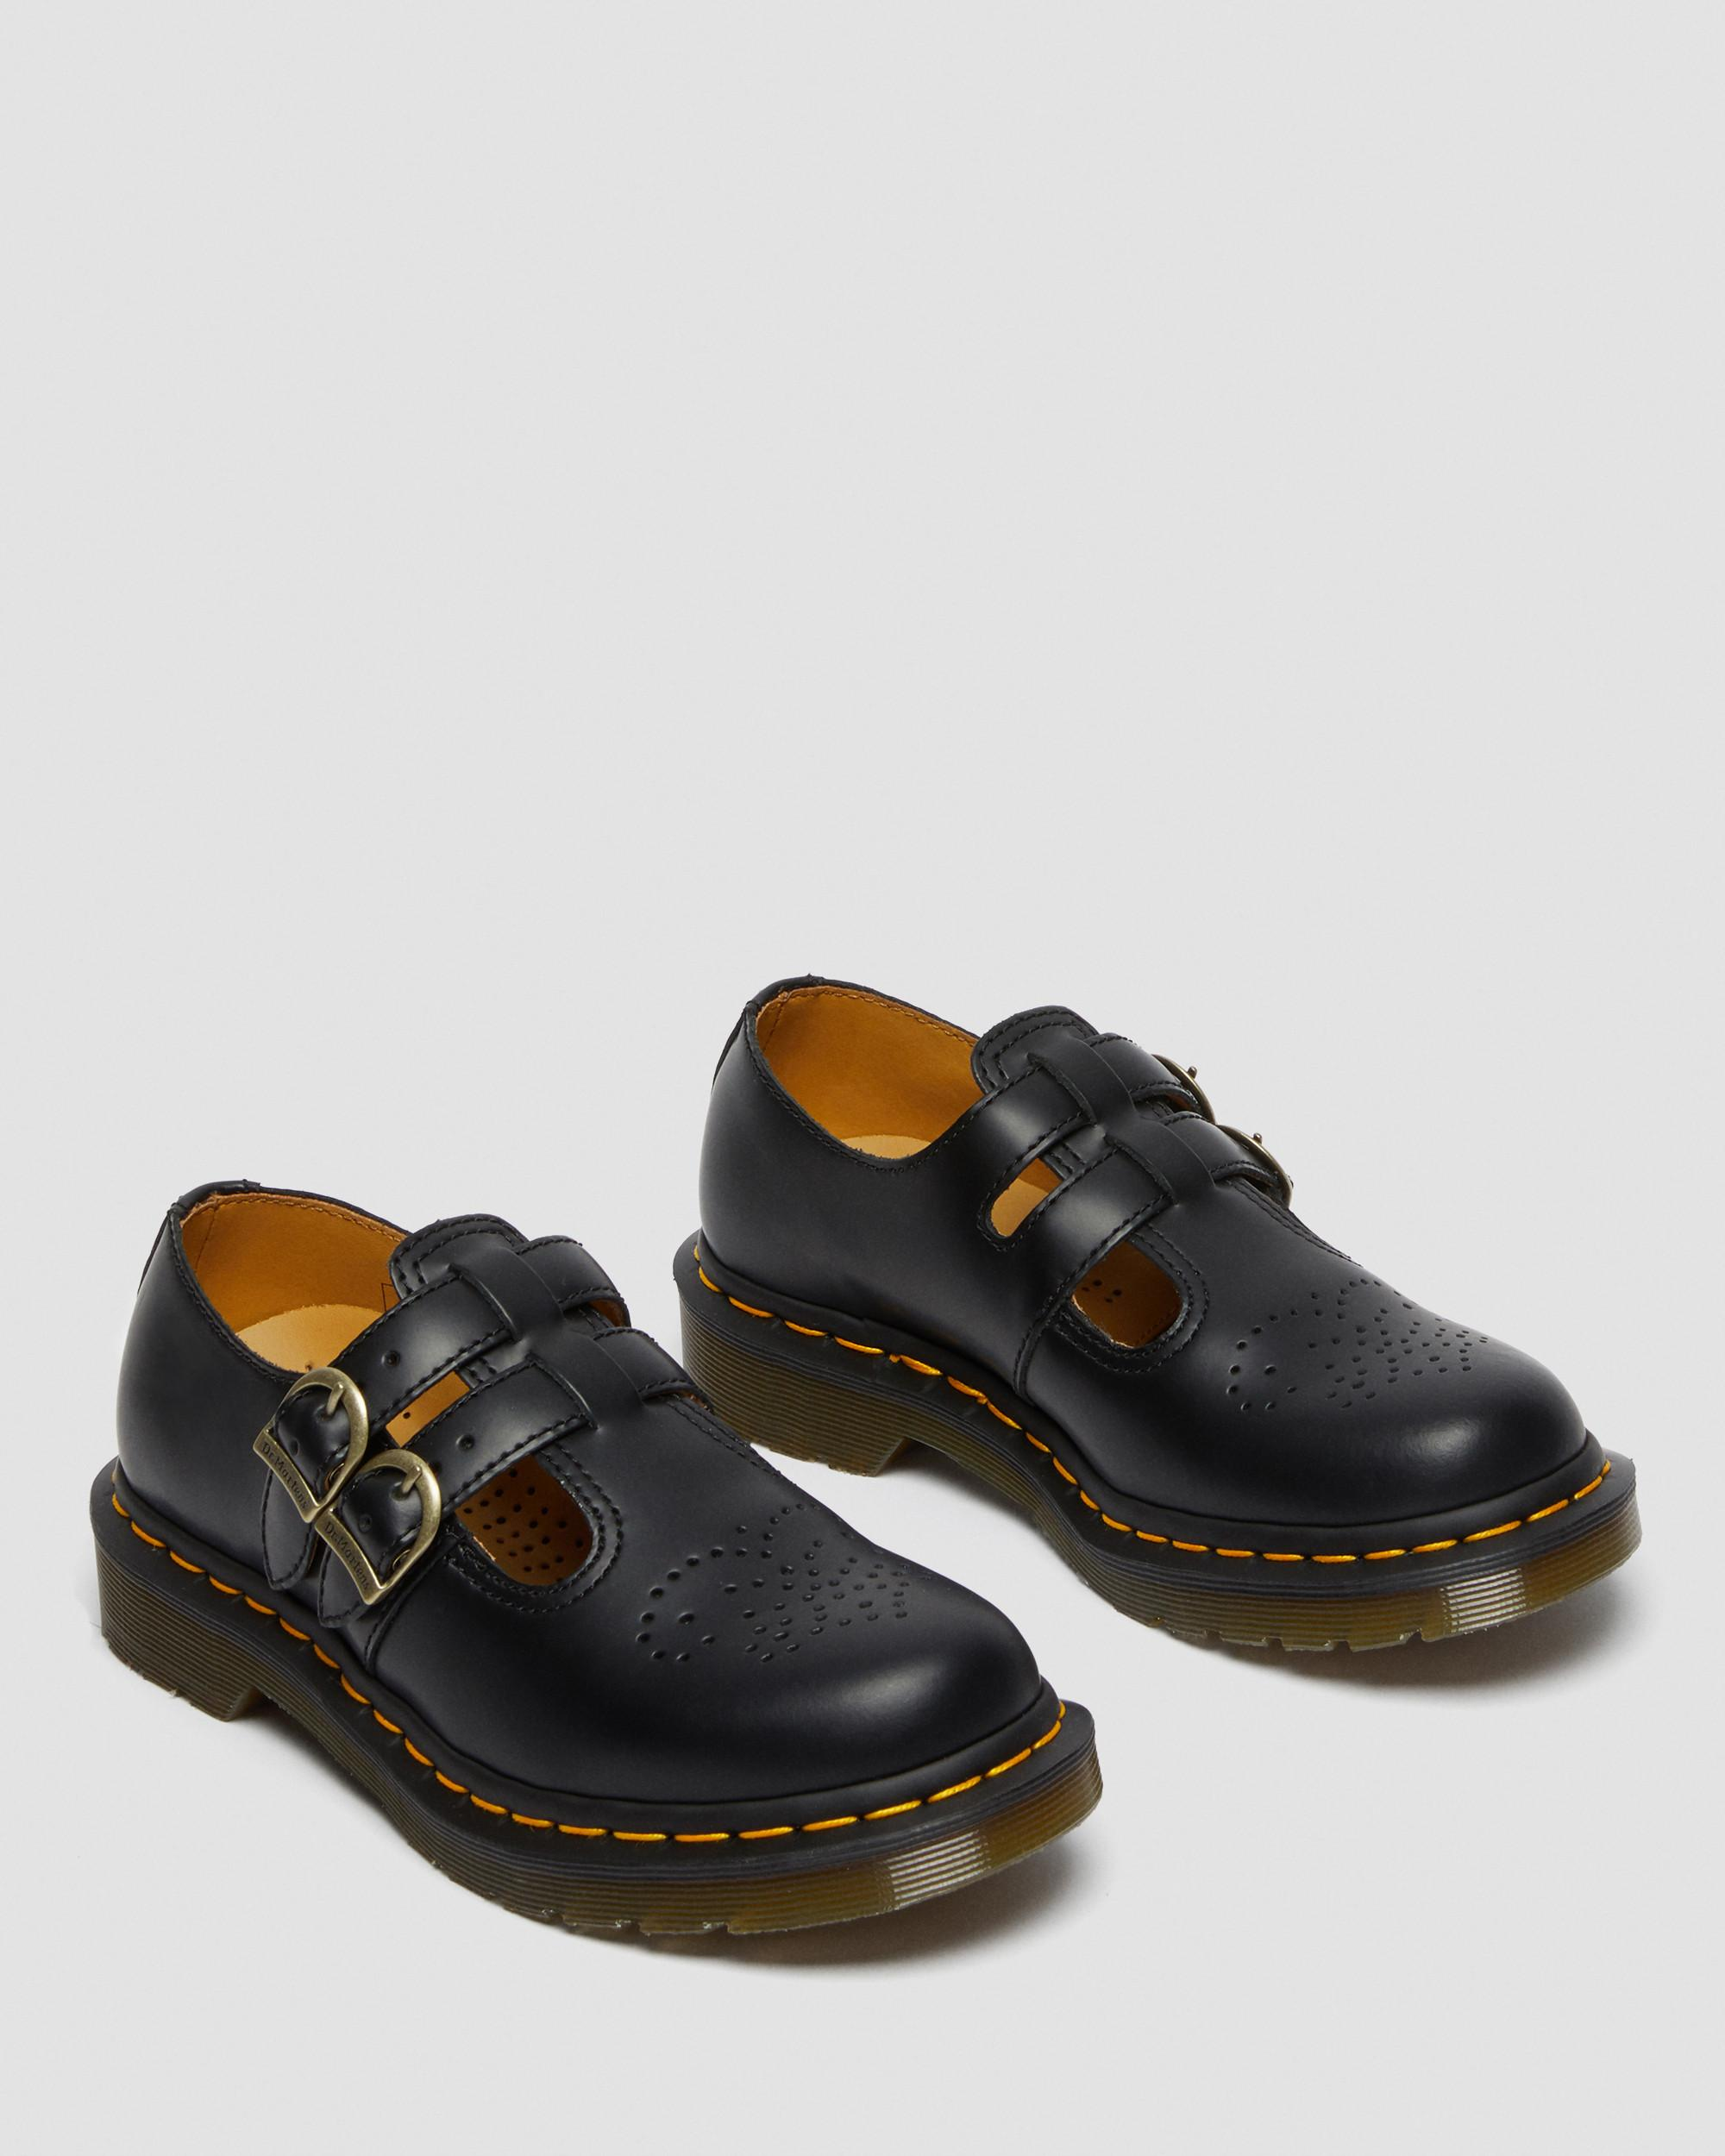 Dr. Martens Polley Daze T Bar Doll Shoes US 5 6 7 8 9 10 11